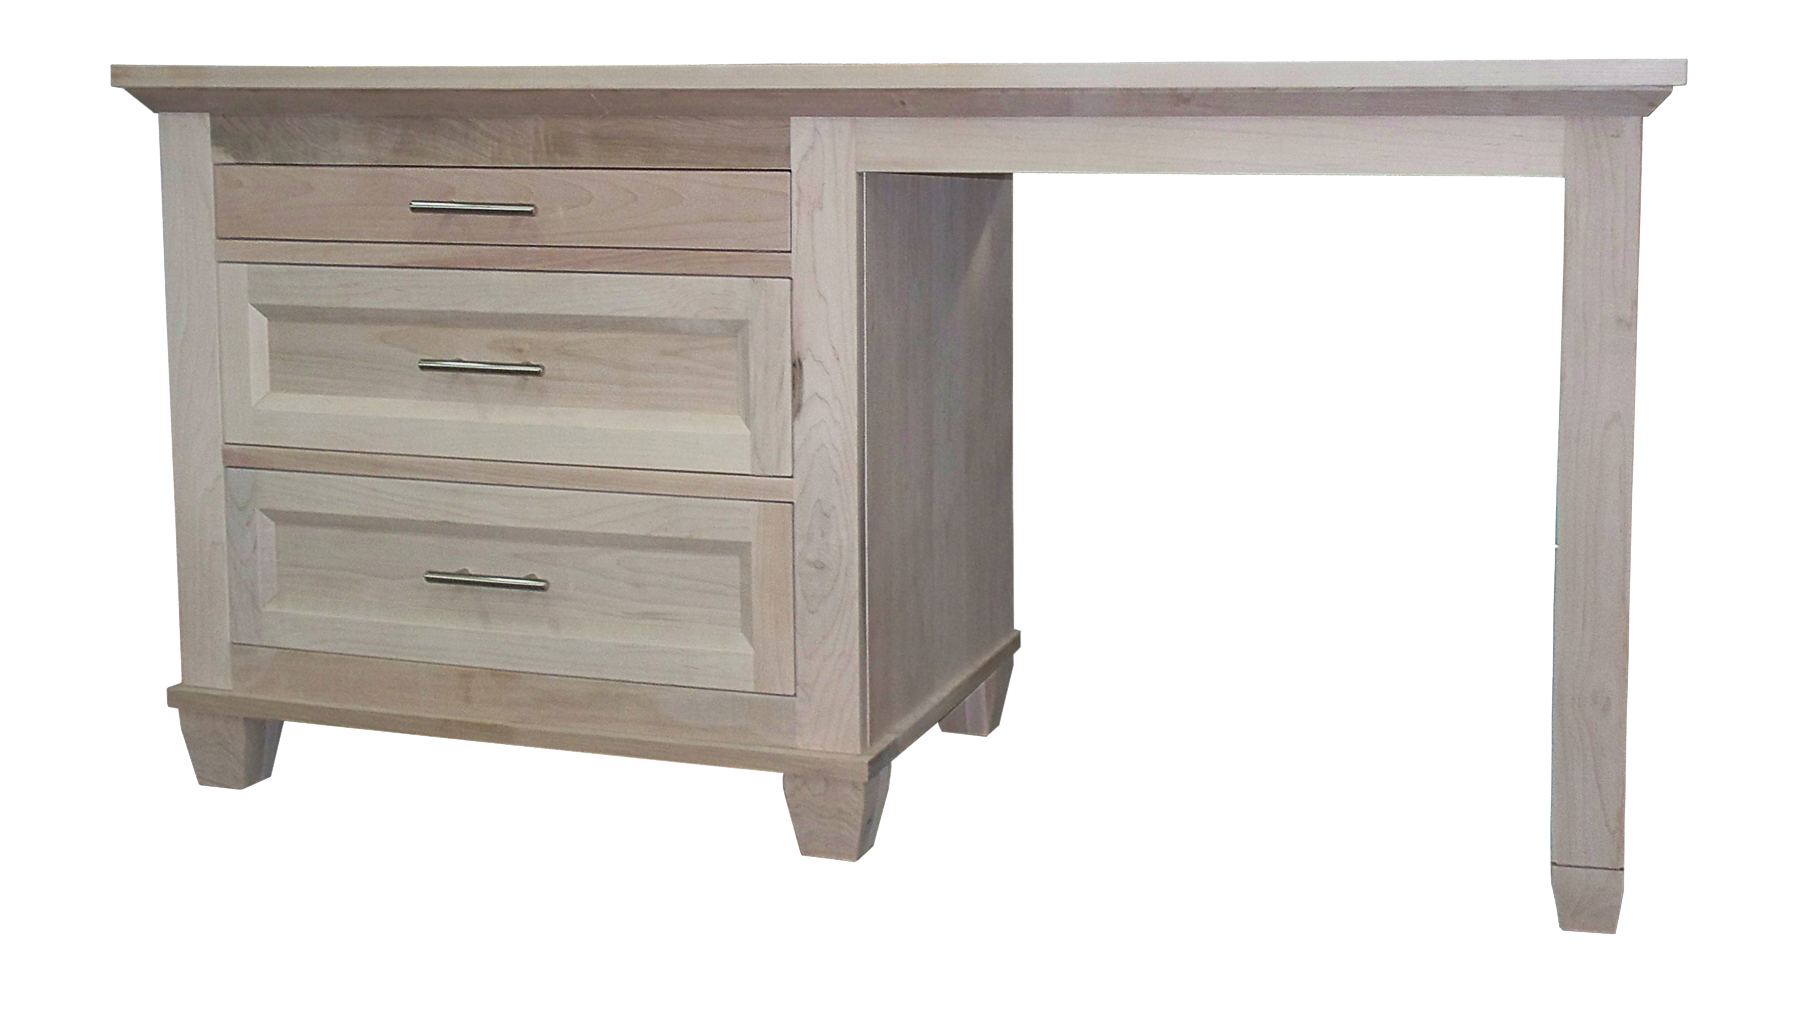 Algonquin Student desk in unfinished Brown Maple